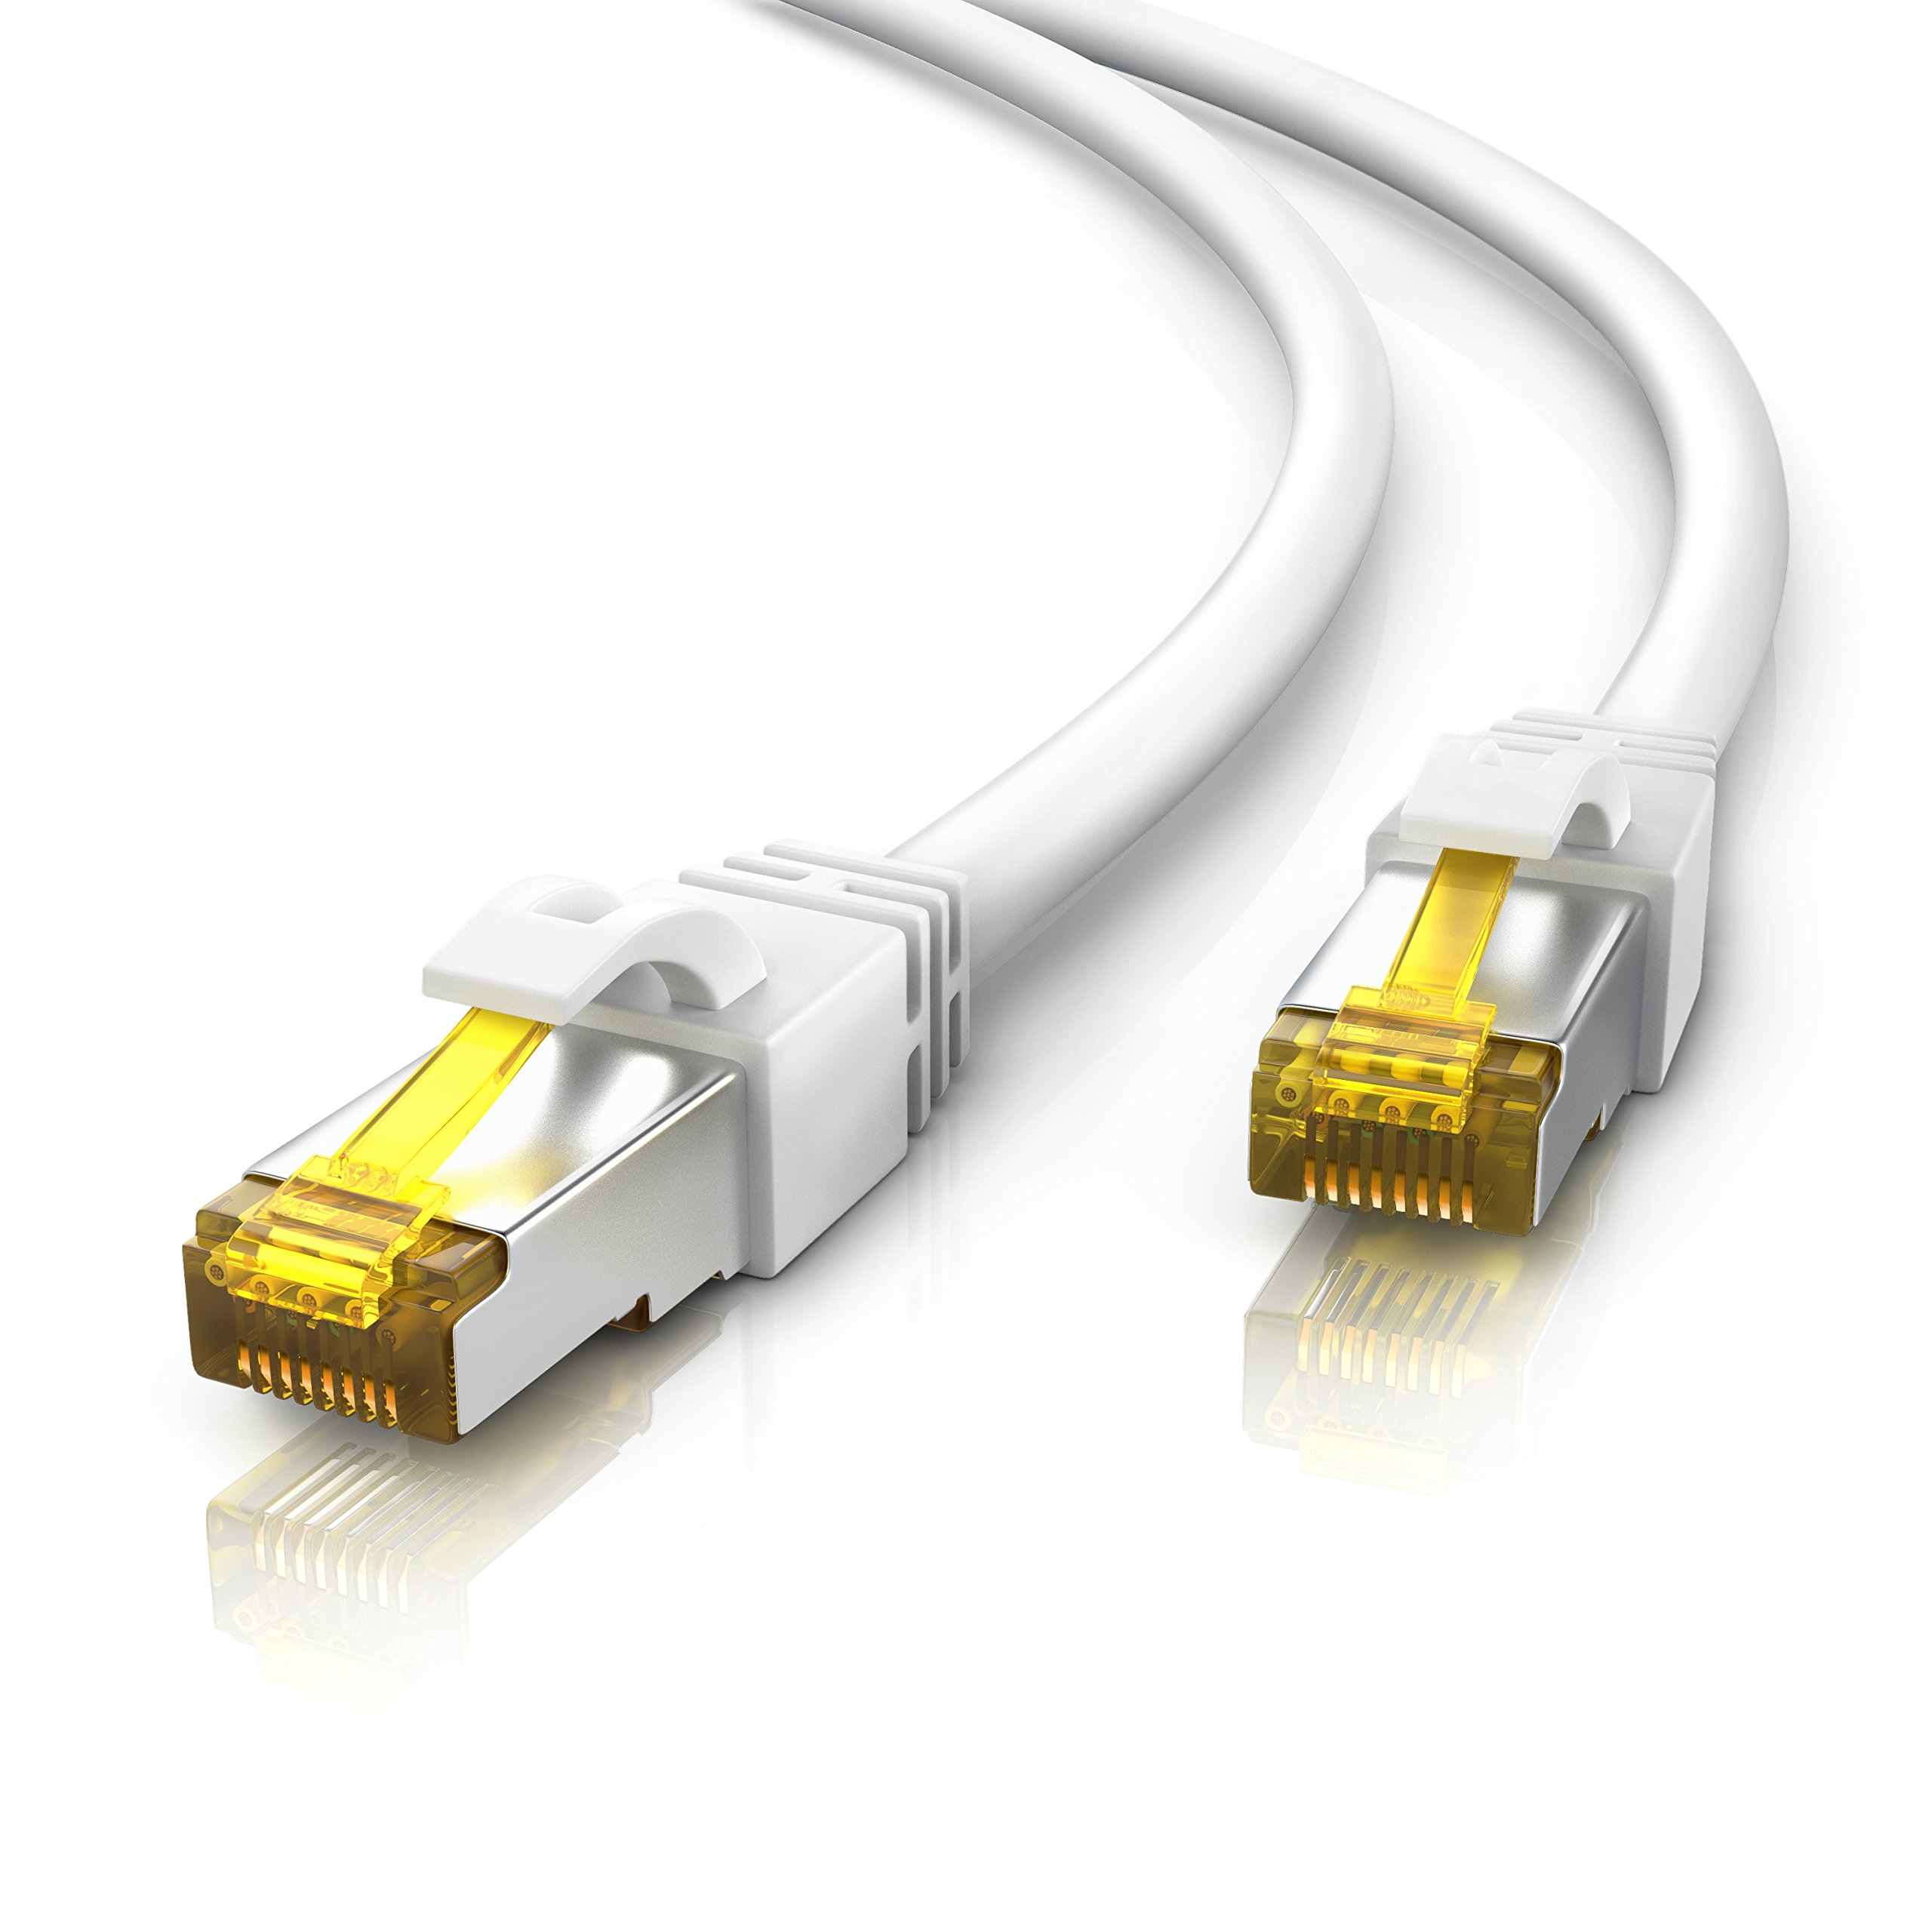 Primewire 10m Cable de Red Cat 7 | Gigabit Ethernet LAN (RJ45) | Cable